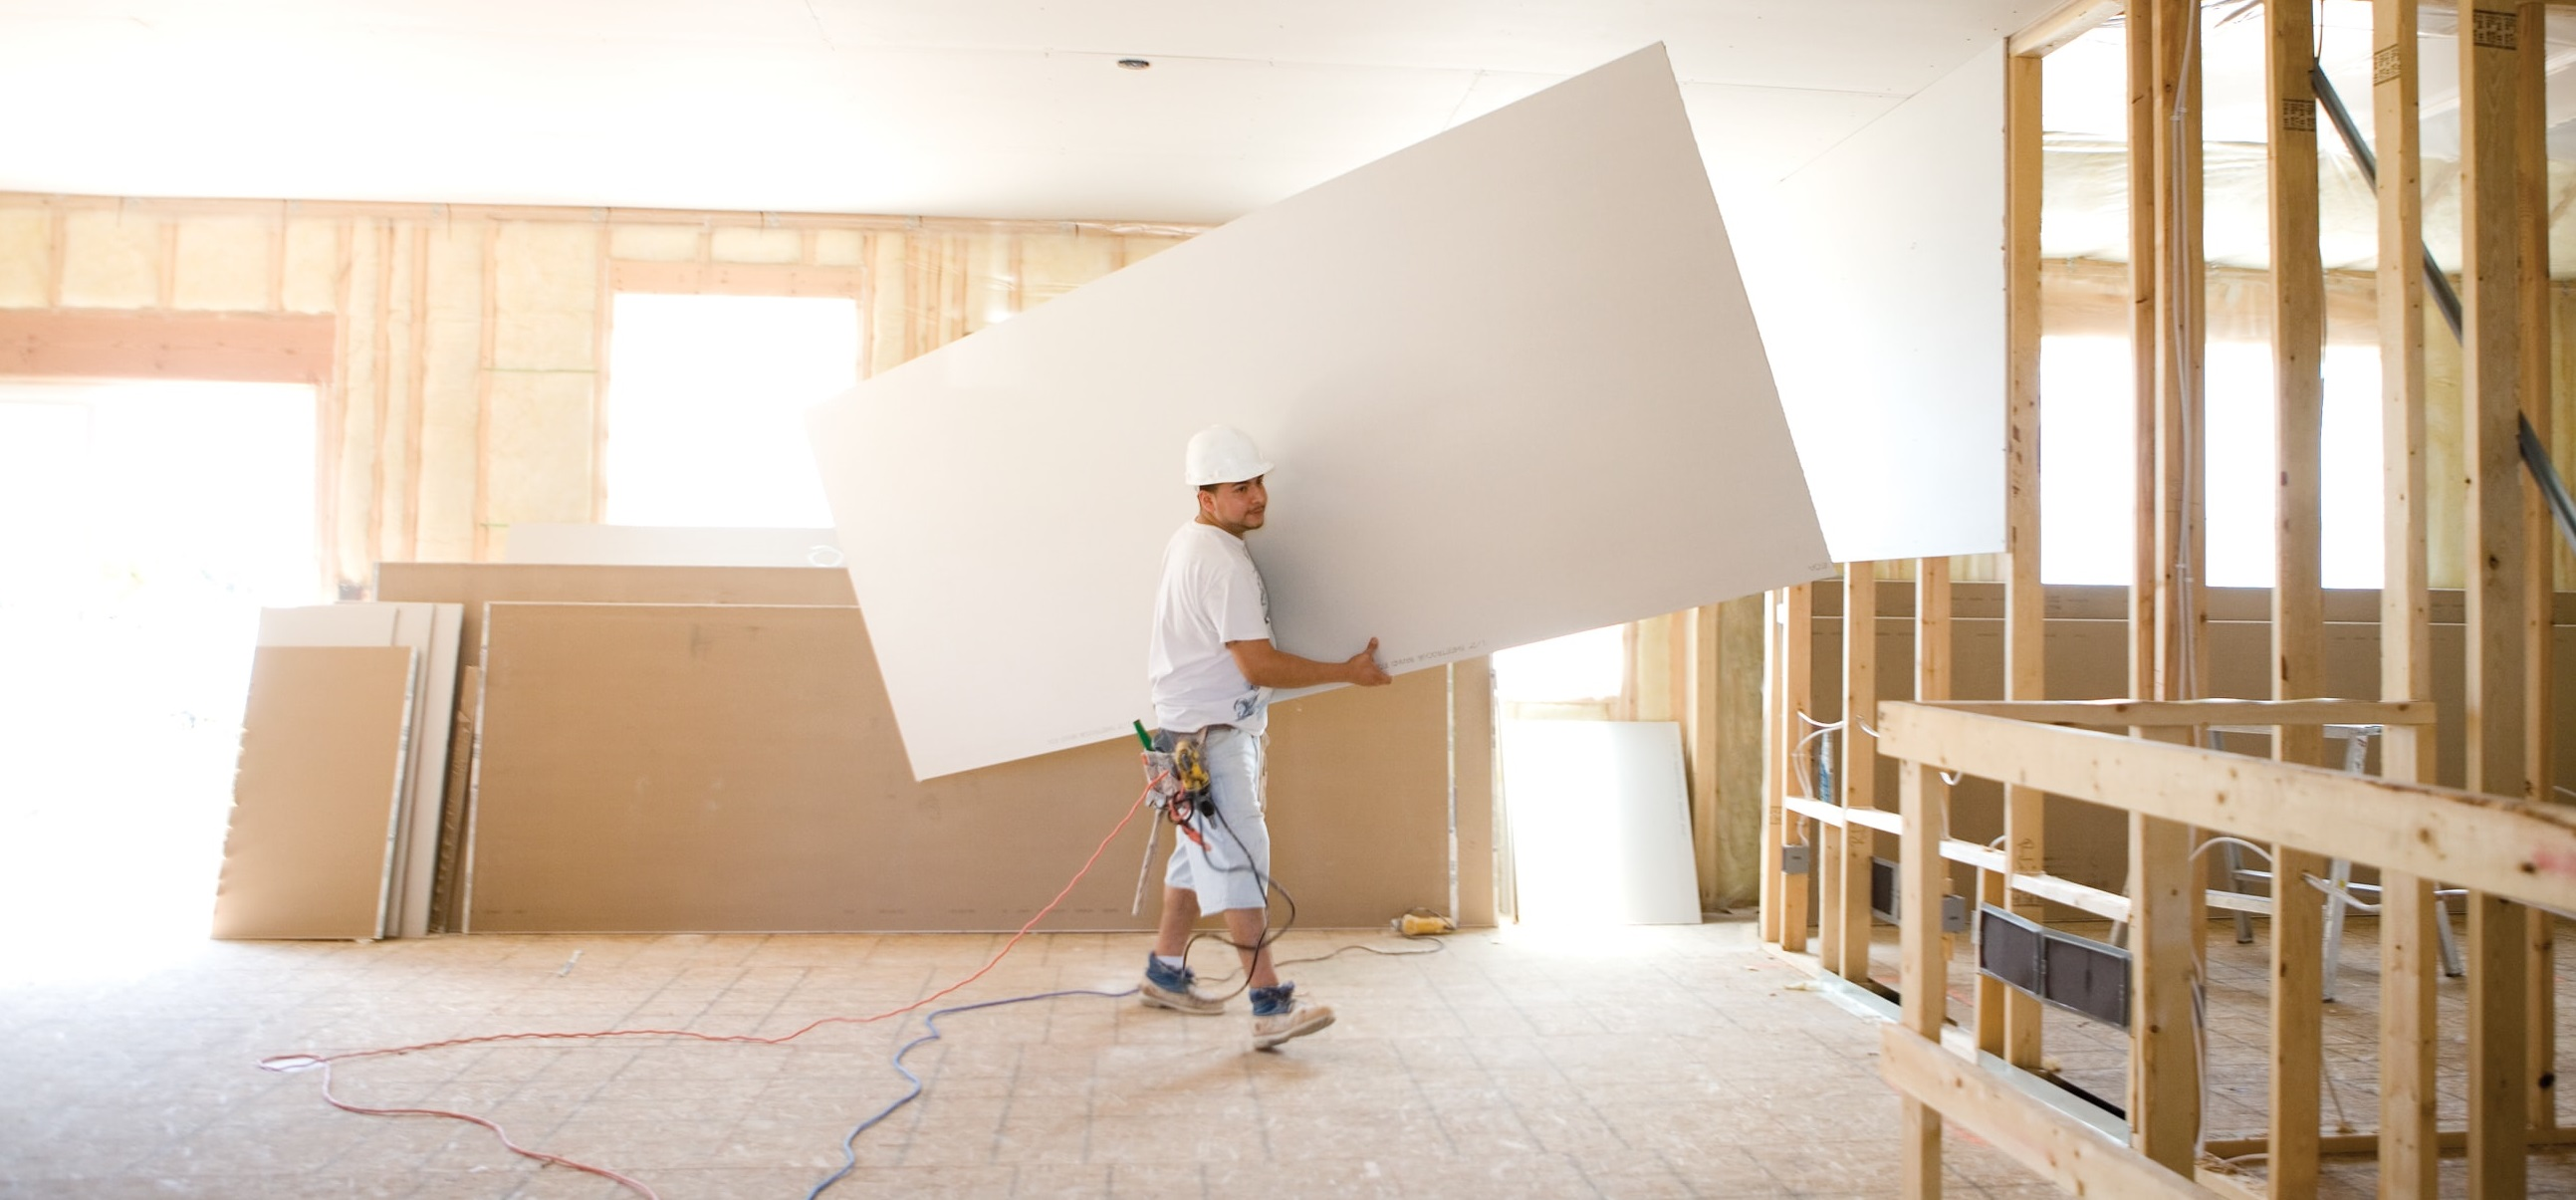 HOME IMPROVEMENTS AND REMODELING